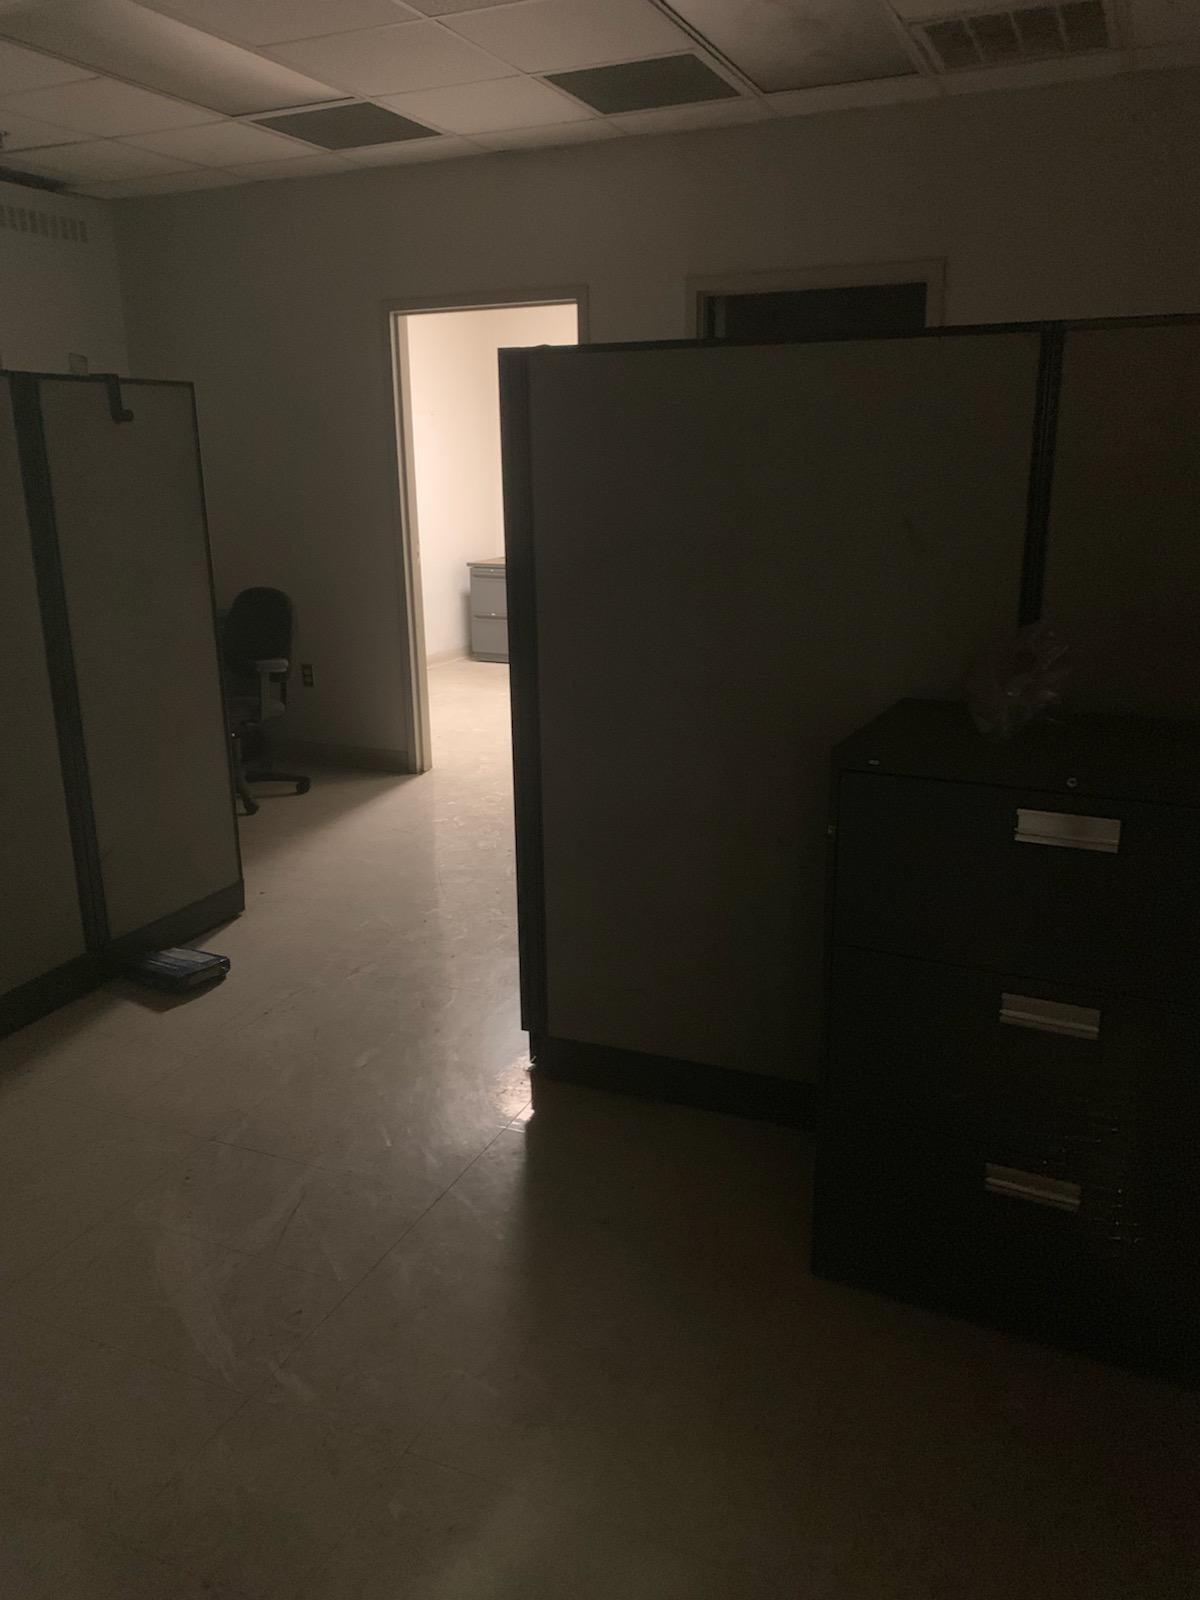 Lot 322A - (3) FILE CABINETS, (2) DESKS, AND (3) CHAIRS